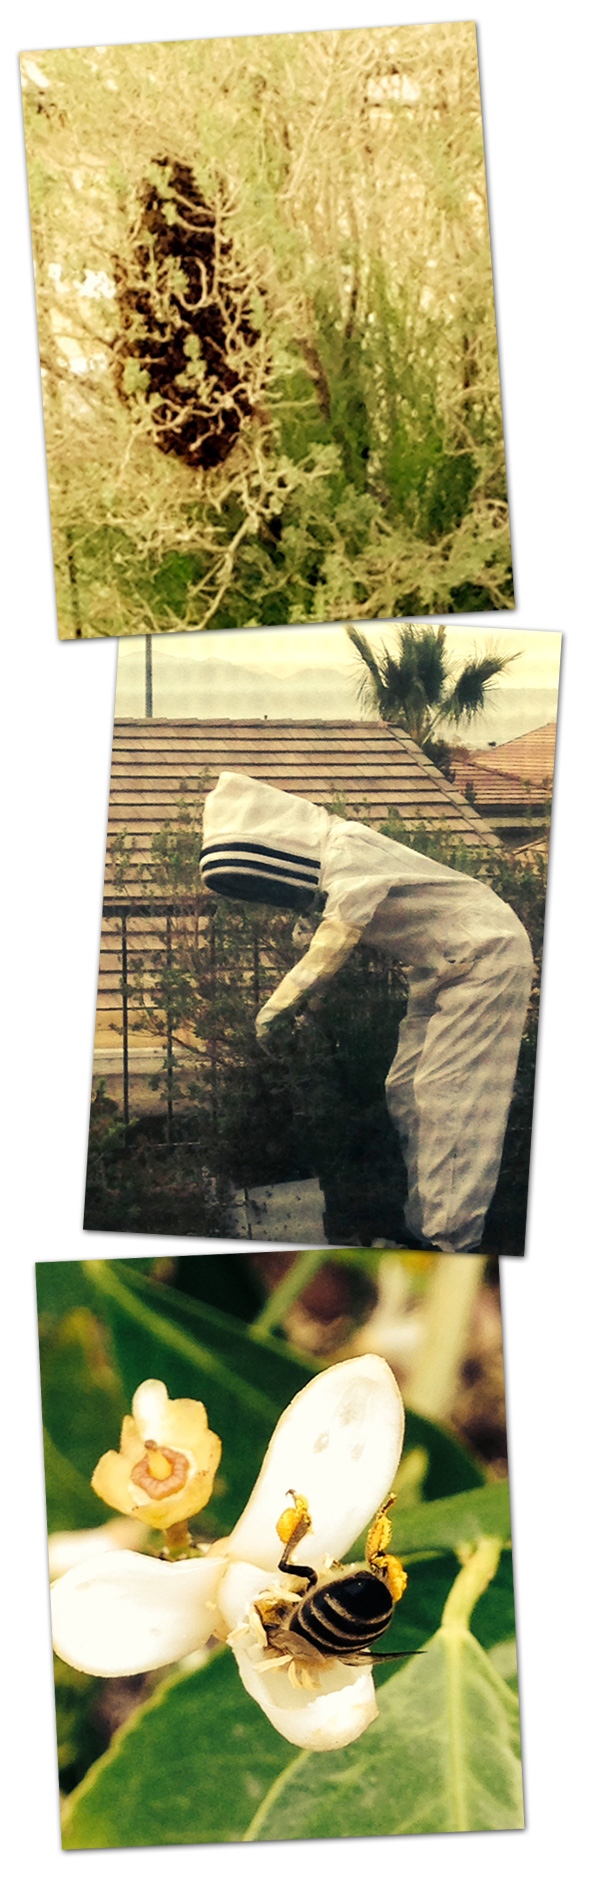 Bees in Boulder City, Nevada